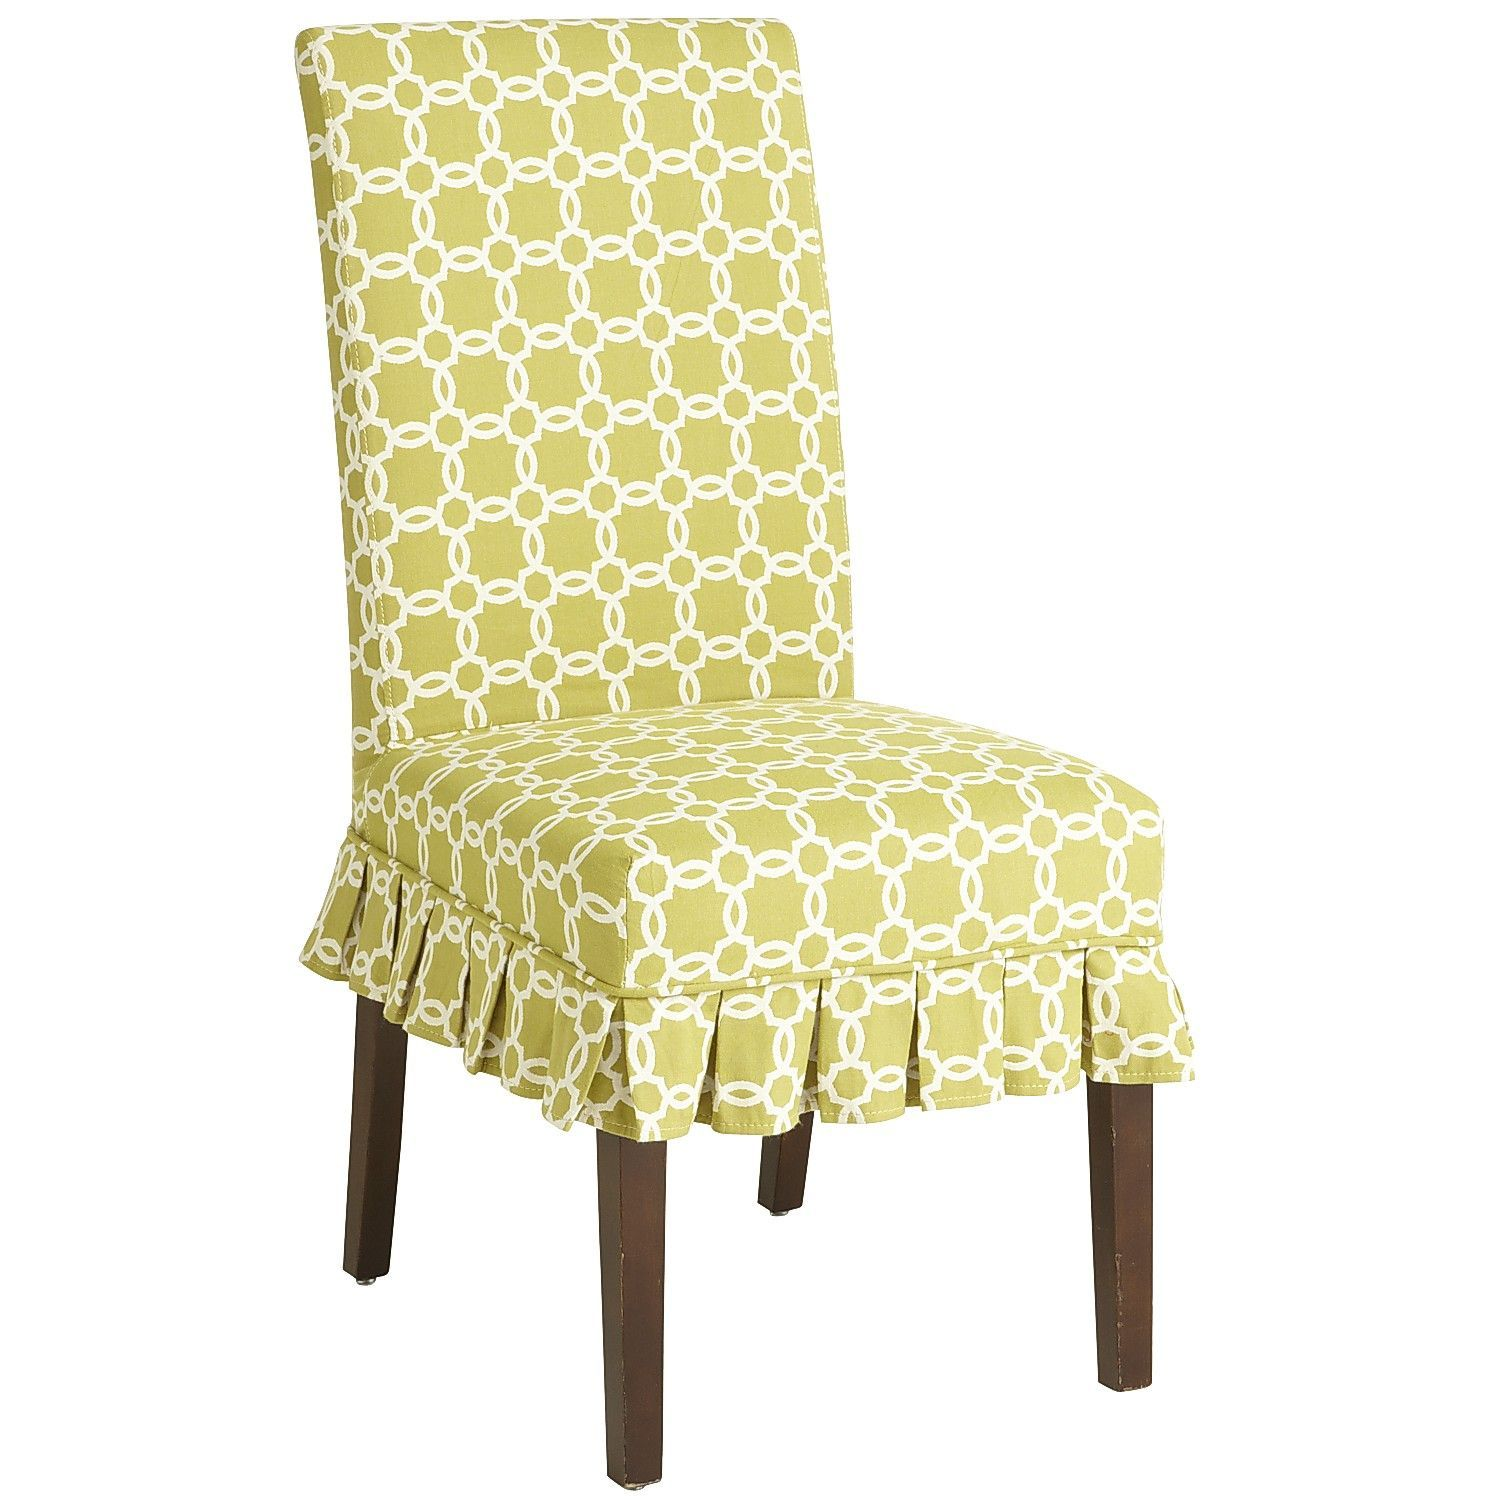 Pier One Chair Covers Dana Parsons Dining Chair Green Geometric Slipcover